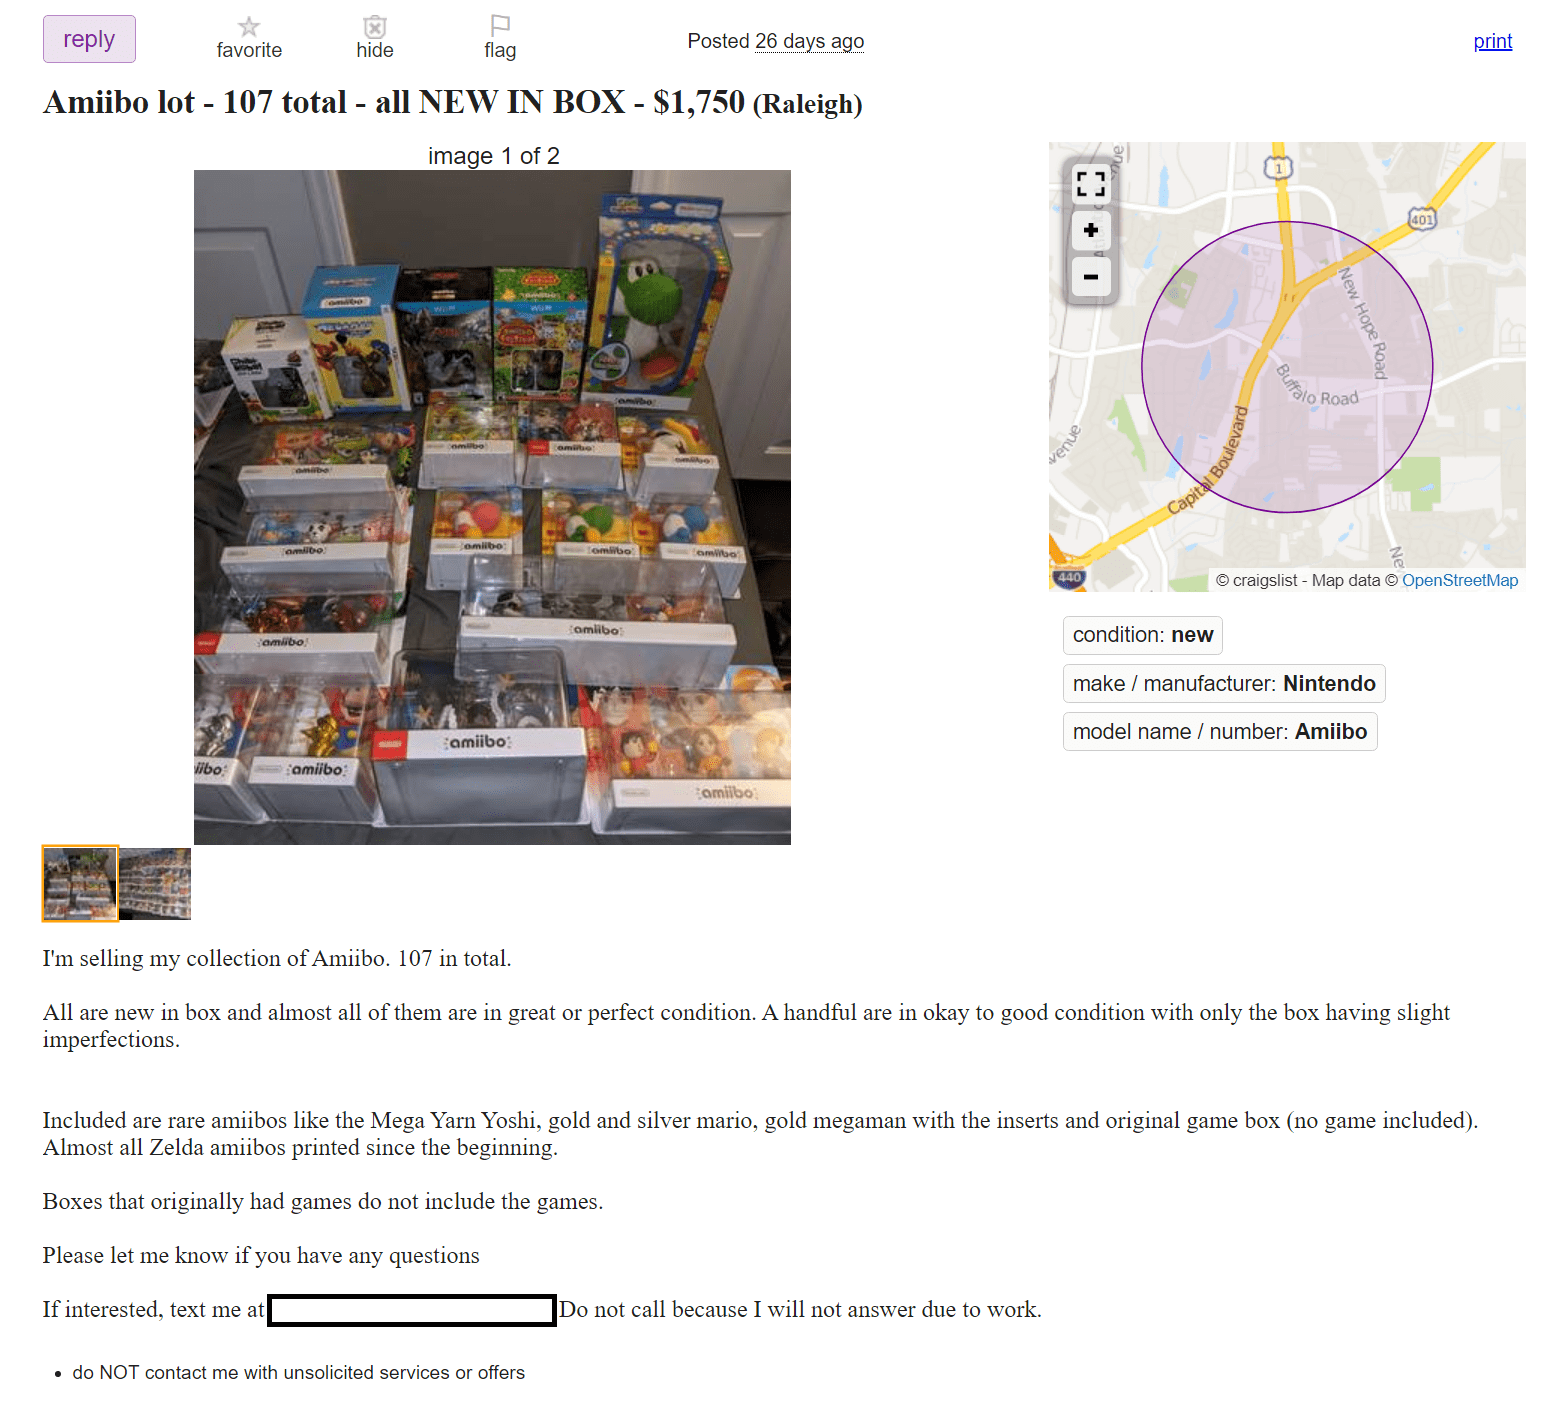 That's a lot of Amiibo